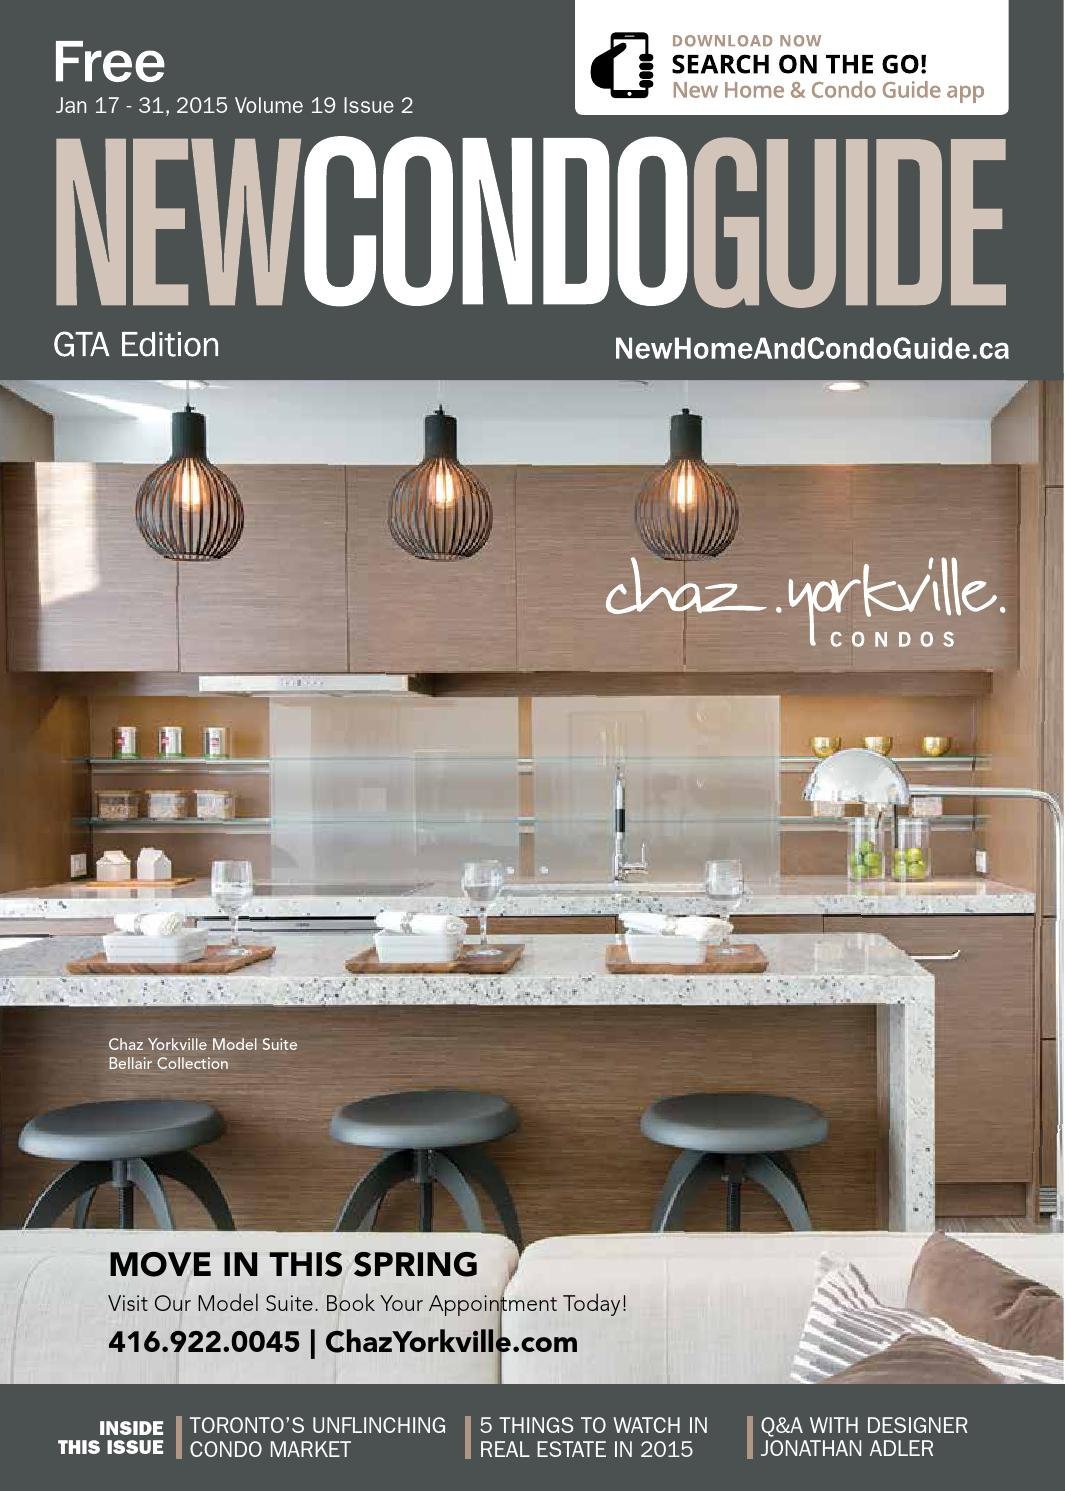 gta new condo guide nexthome issuu page avani drum accent table round coffee metal base triangle end with drawer bedside chest drawers small couch faux marble teak side chocolate